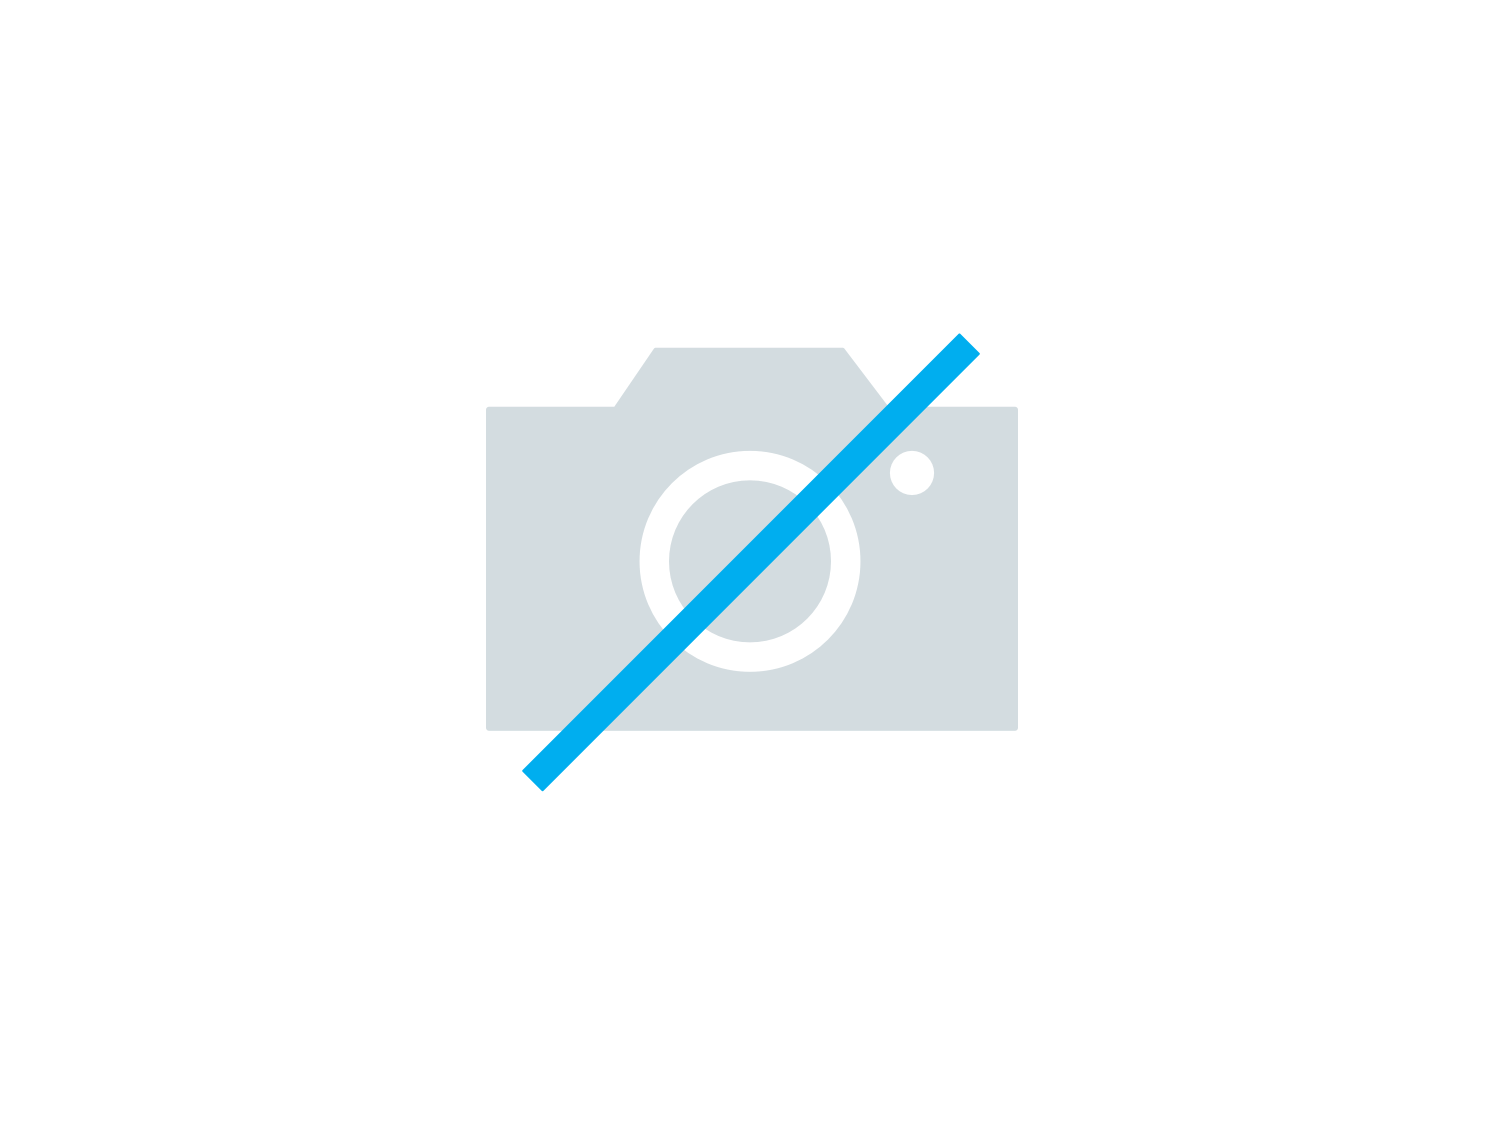 Badmat Havana 60x90cm sea green